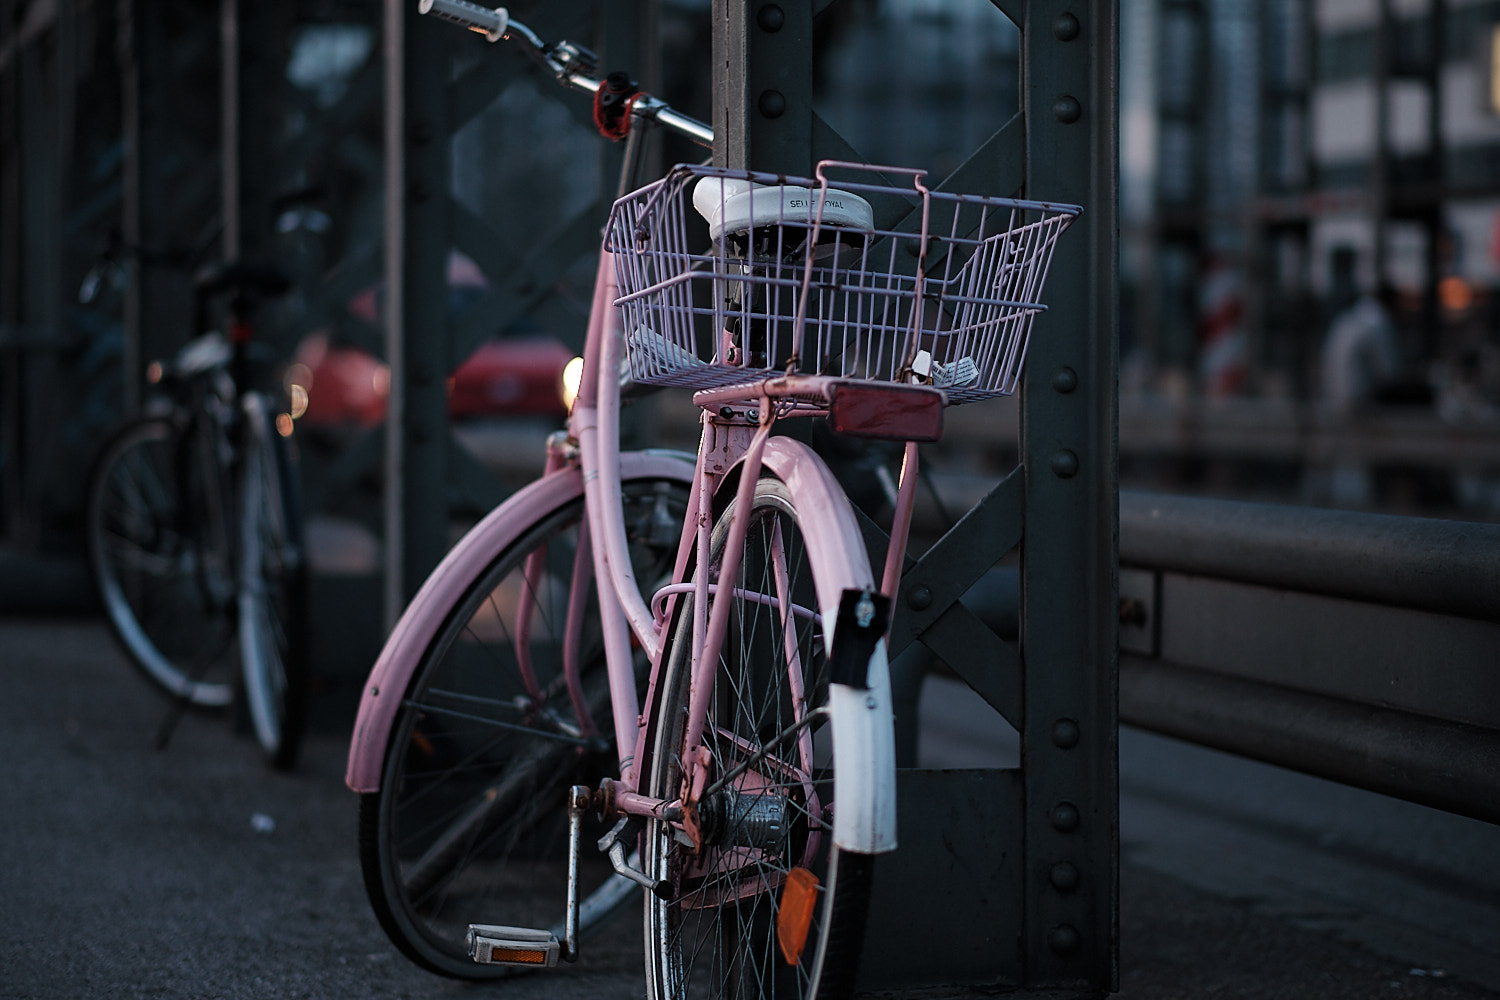 A view of the east side of the Hackerbrücke bridge from the south side in the late afternoon blue hour and a pink bicycle locked to a pillar.